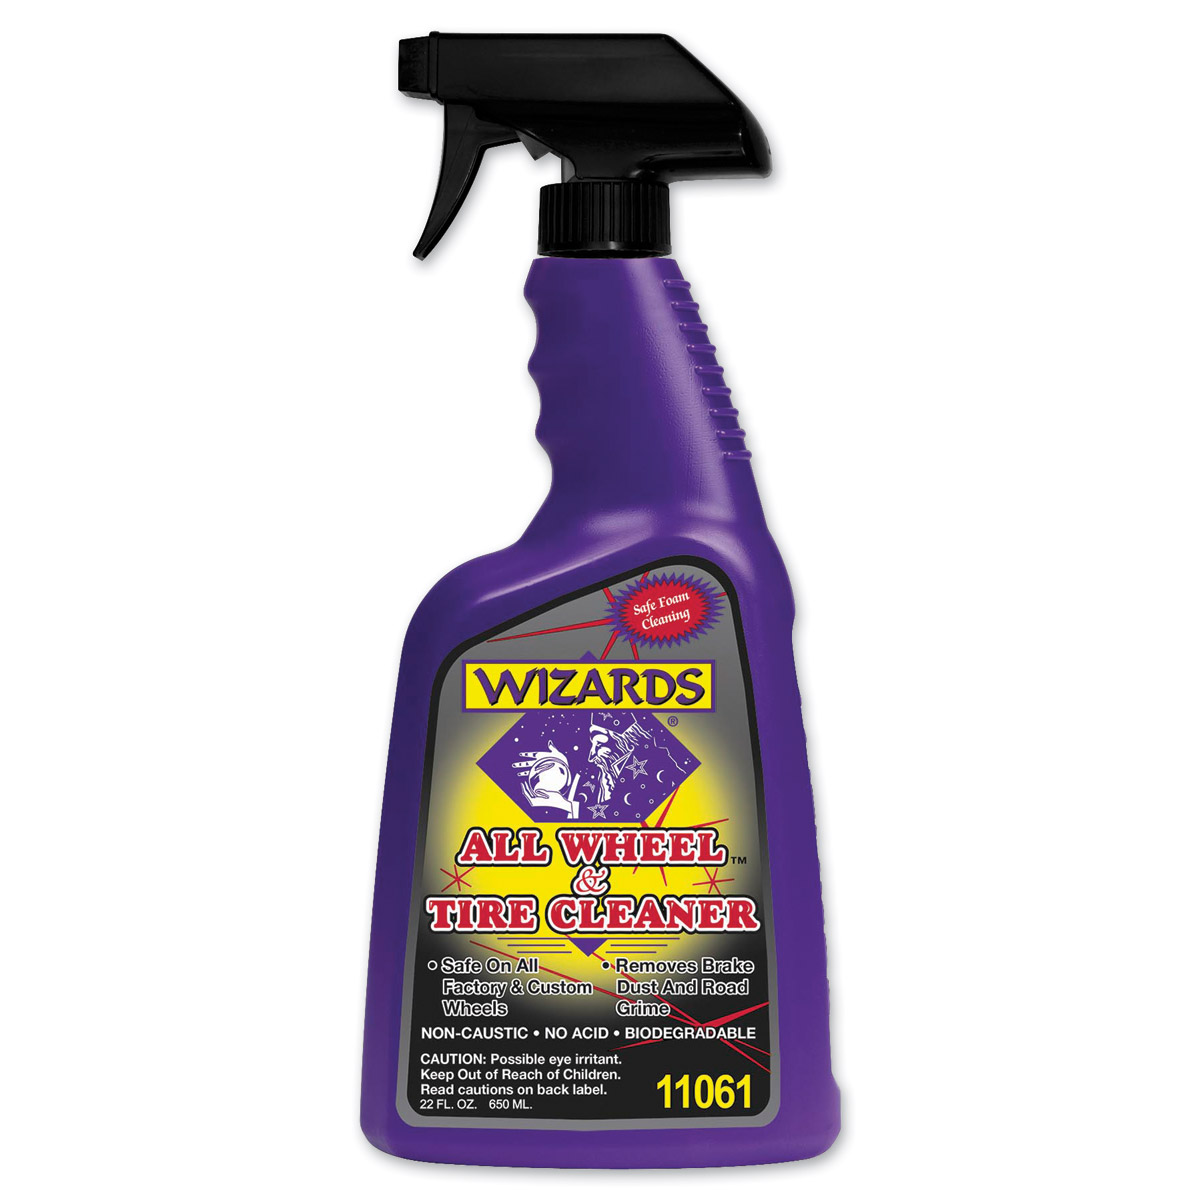 Wizards All Wheel & Tire Cleaner